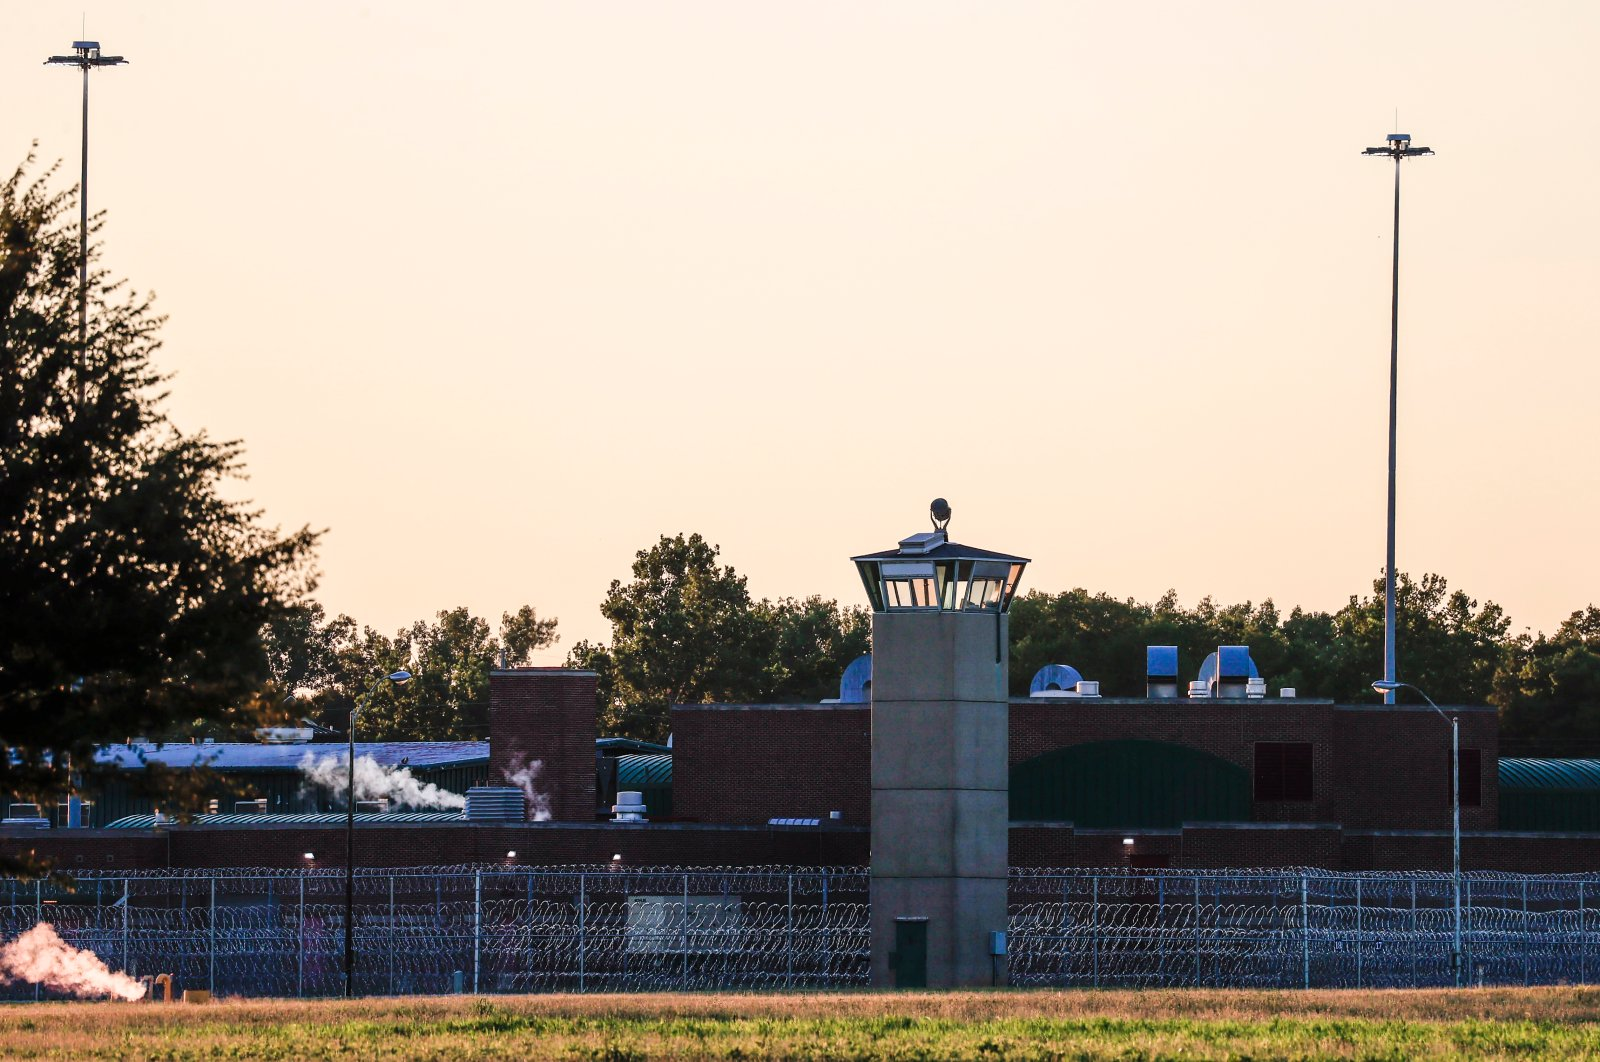 Razor wire and guard towers surround the U.S. Penitentiary complex that houses the federal execution chamber in Terre Haute, Indiana, July 13, 2020. (EPA Photo)